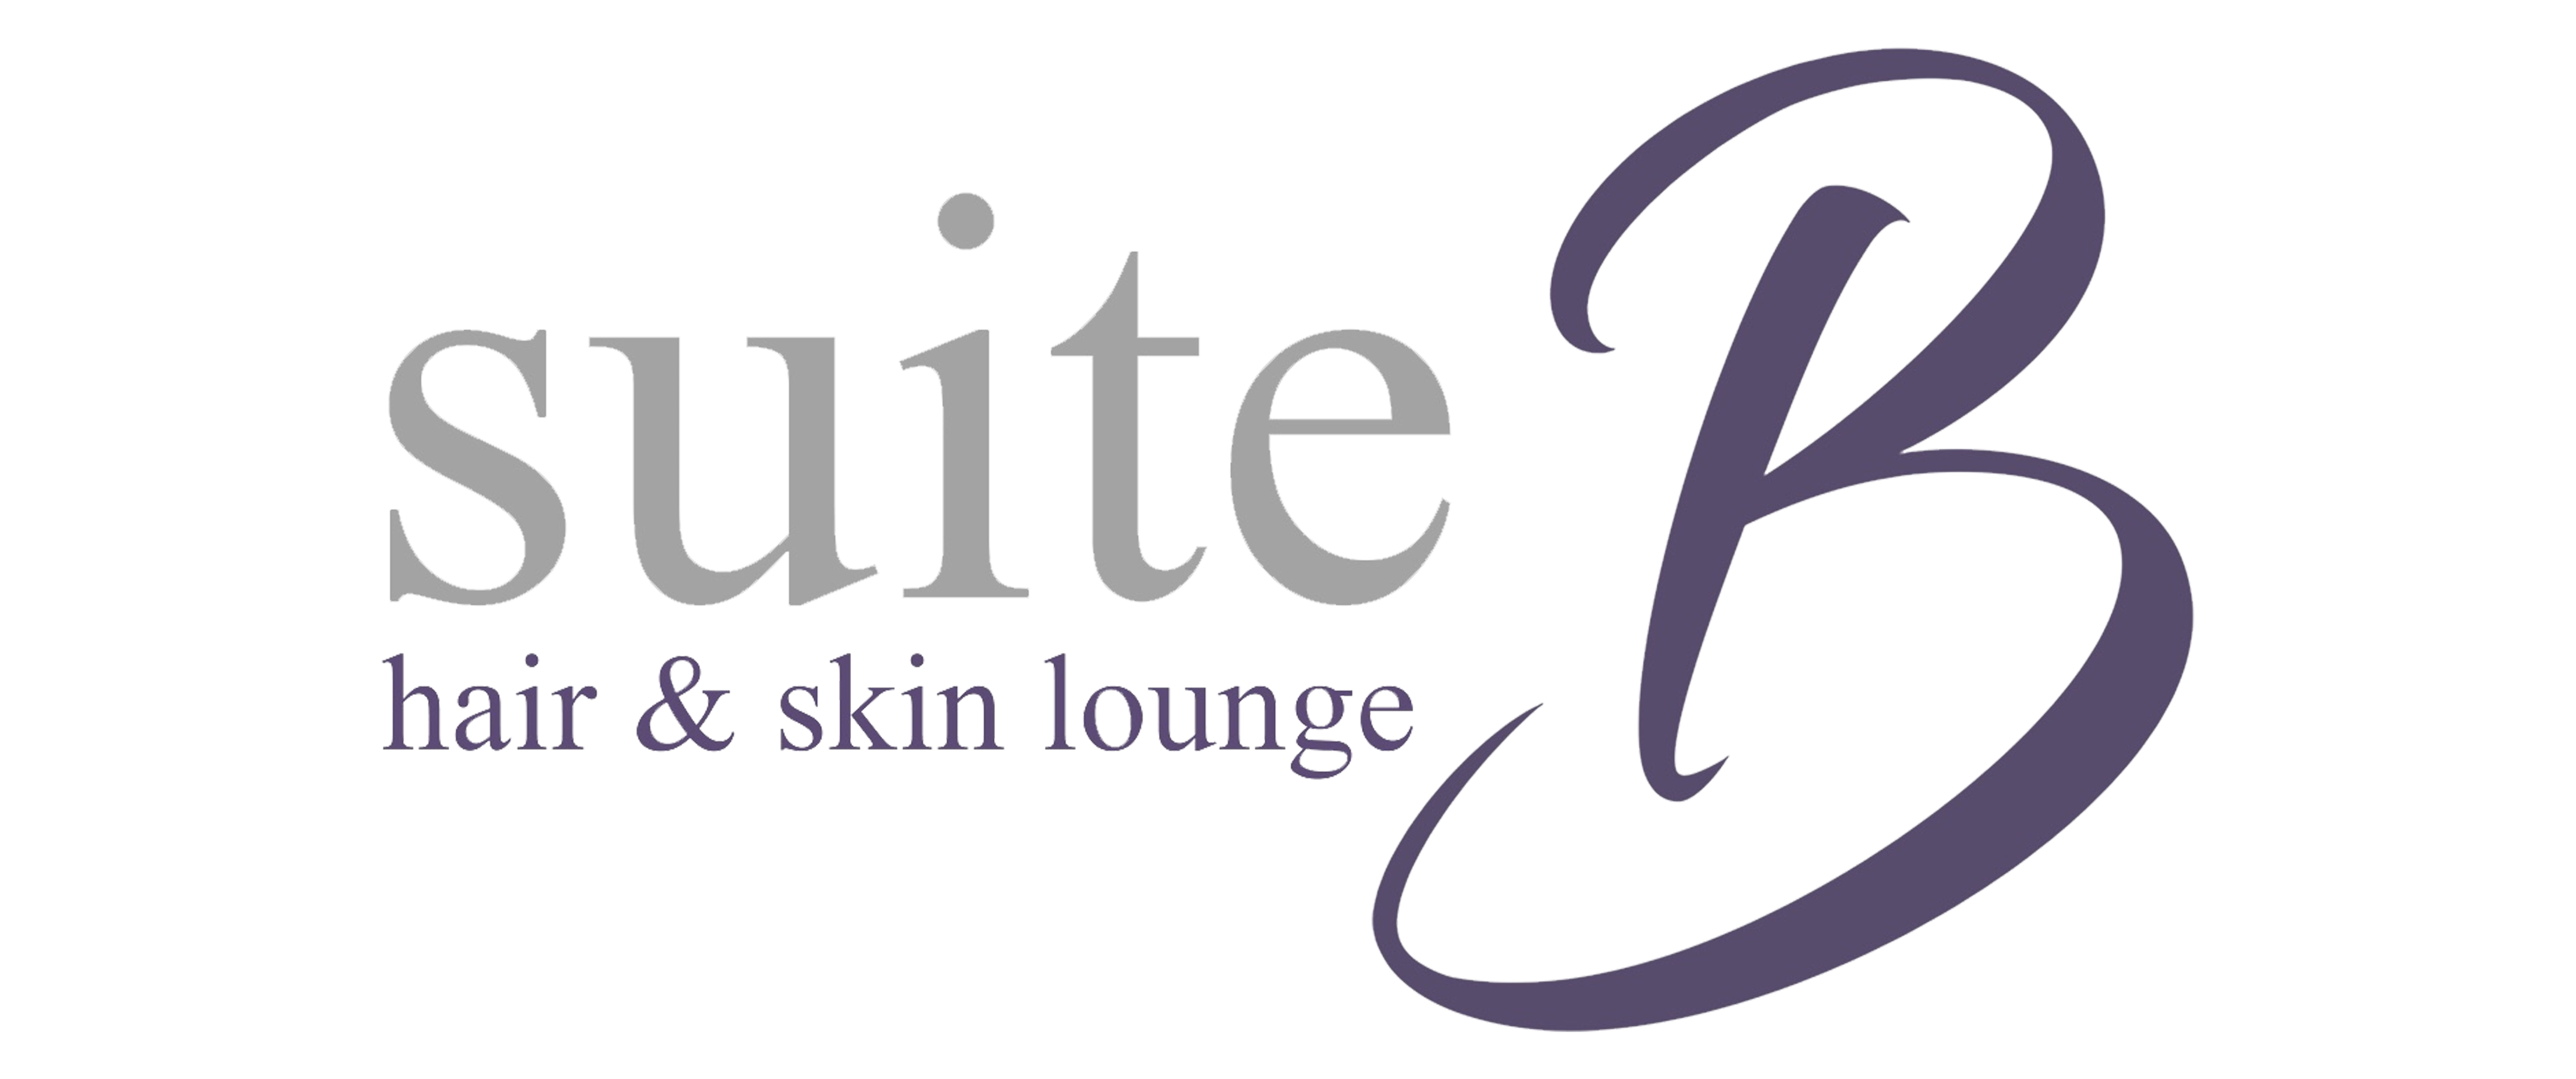 Suite B Hair and Skin Lounge Issaquah